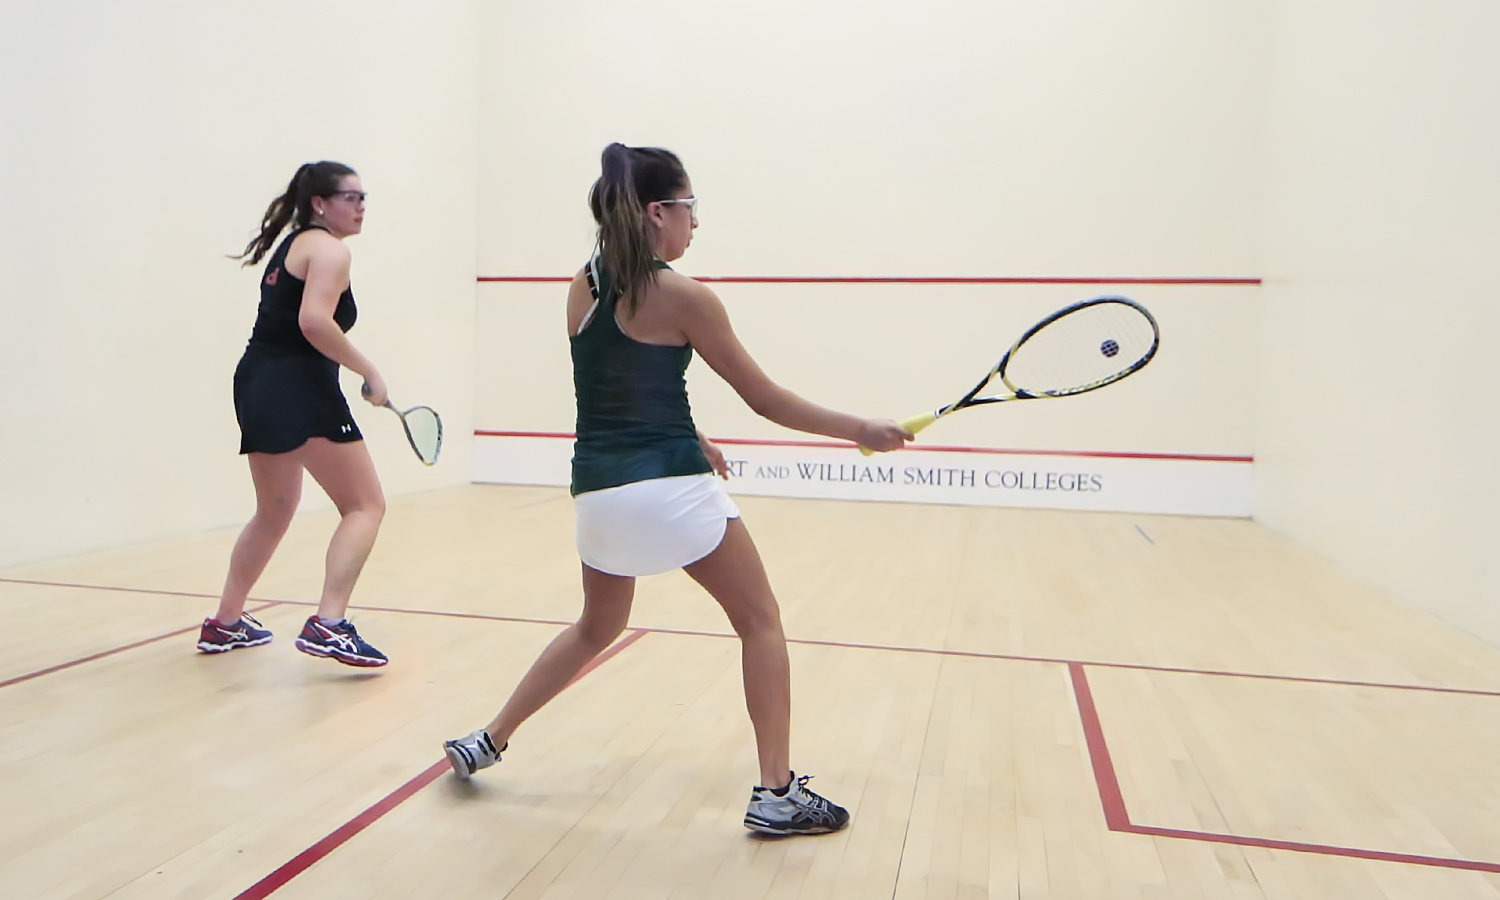 Joana Pacheco '21 hits a forehand during William Smith's squash match against Dickenson College.